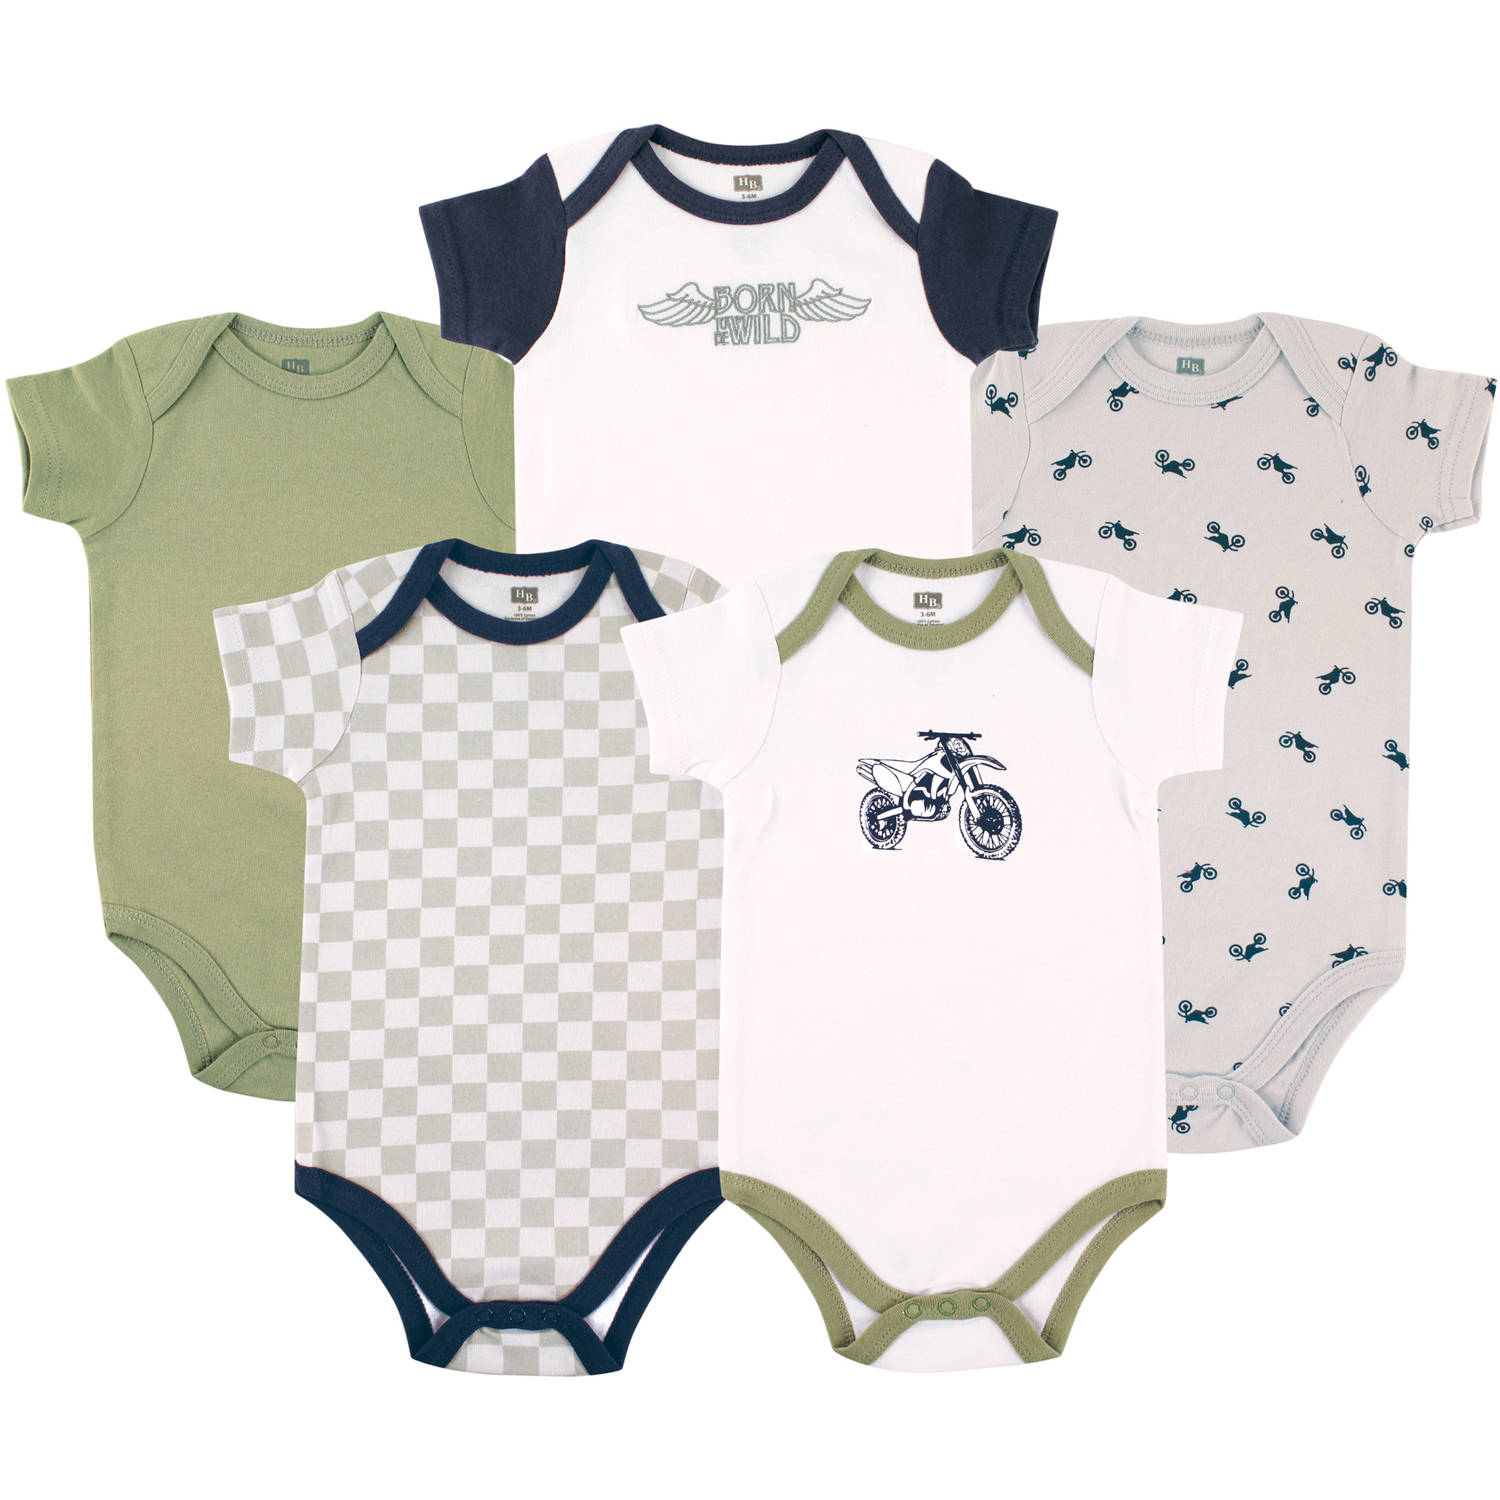 Hudson Baby Newborn Baby Boys 5 Pack Bodysuit - Dirt Bike